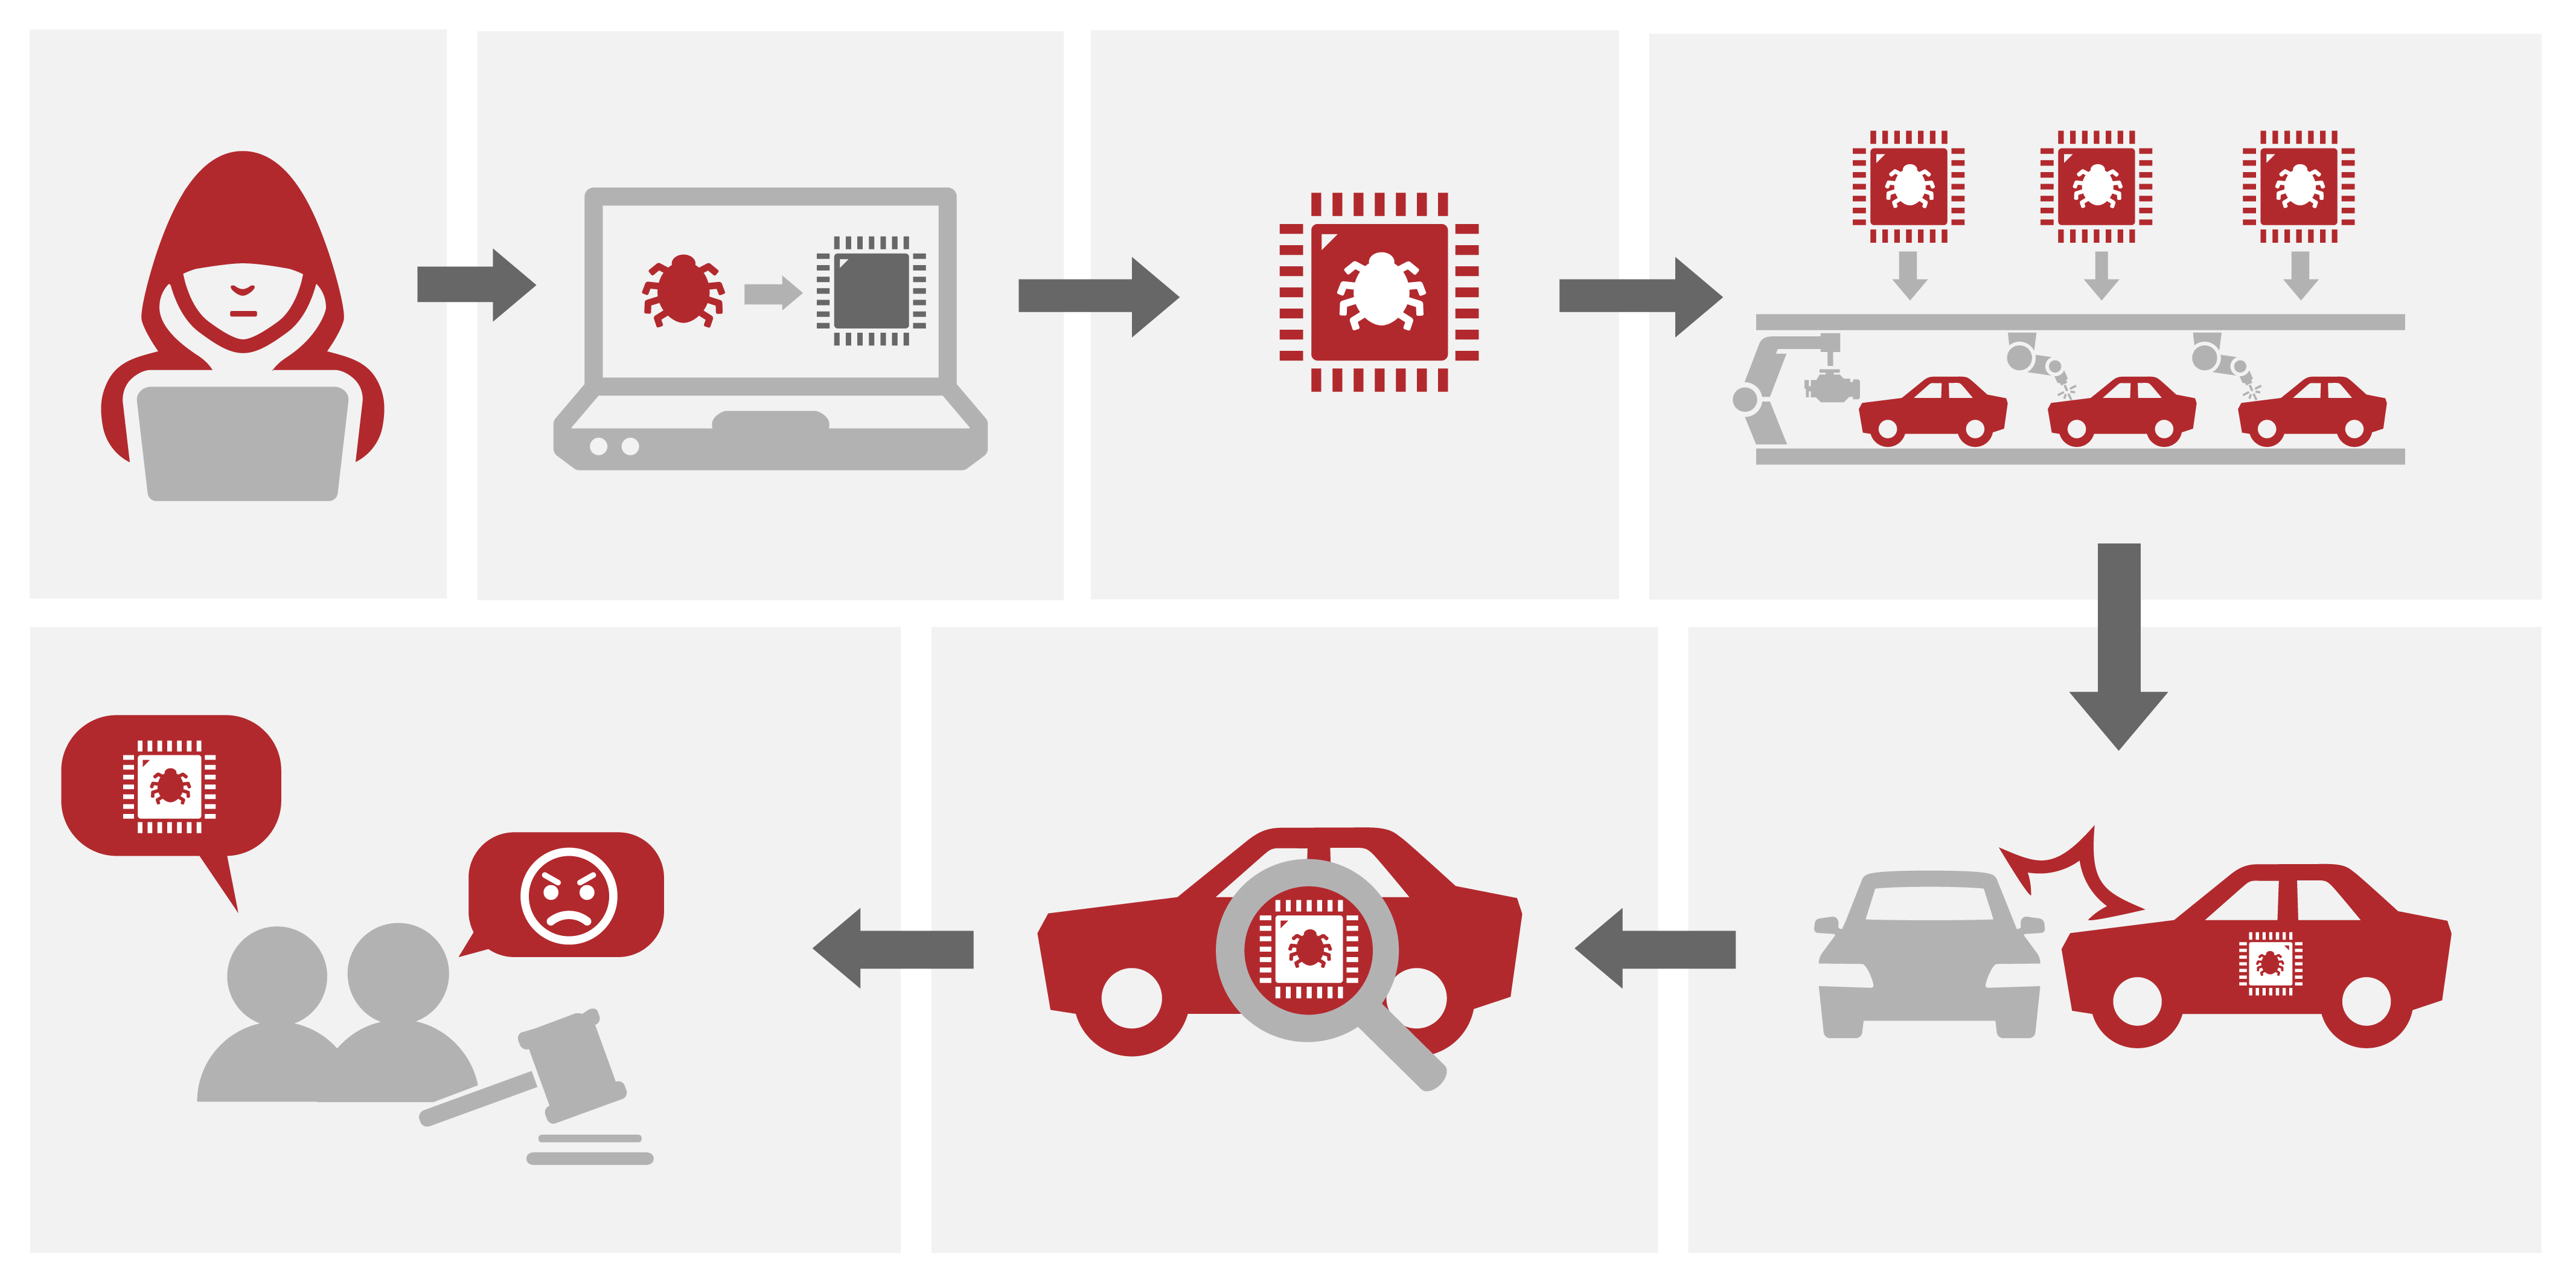 Feature image for the automotive cybersecurity resource guide